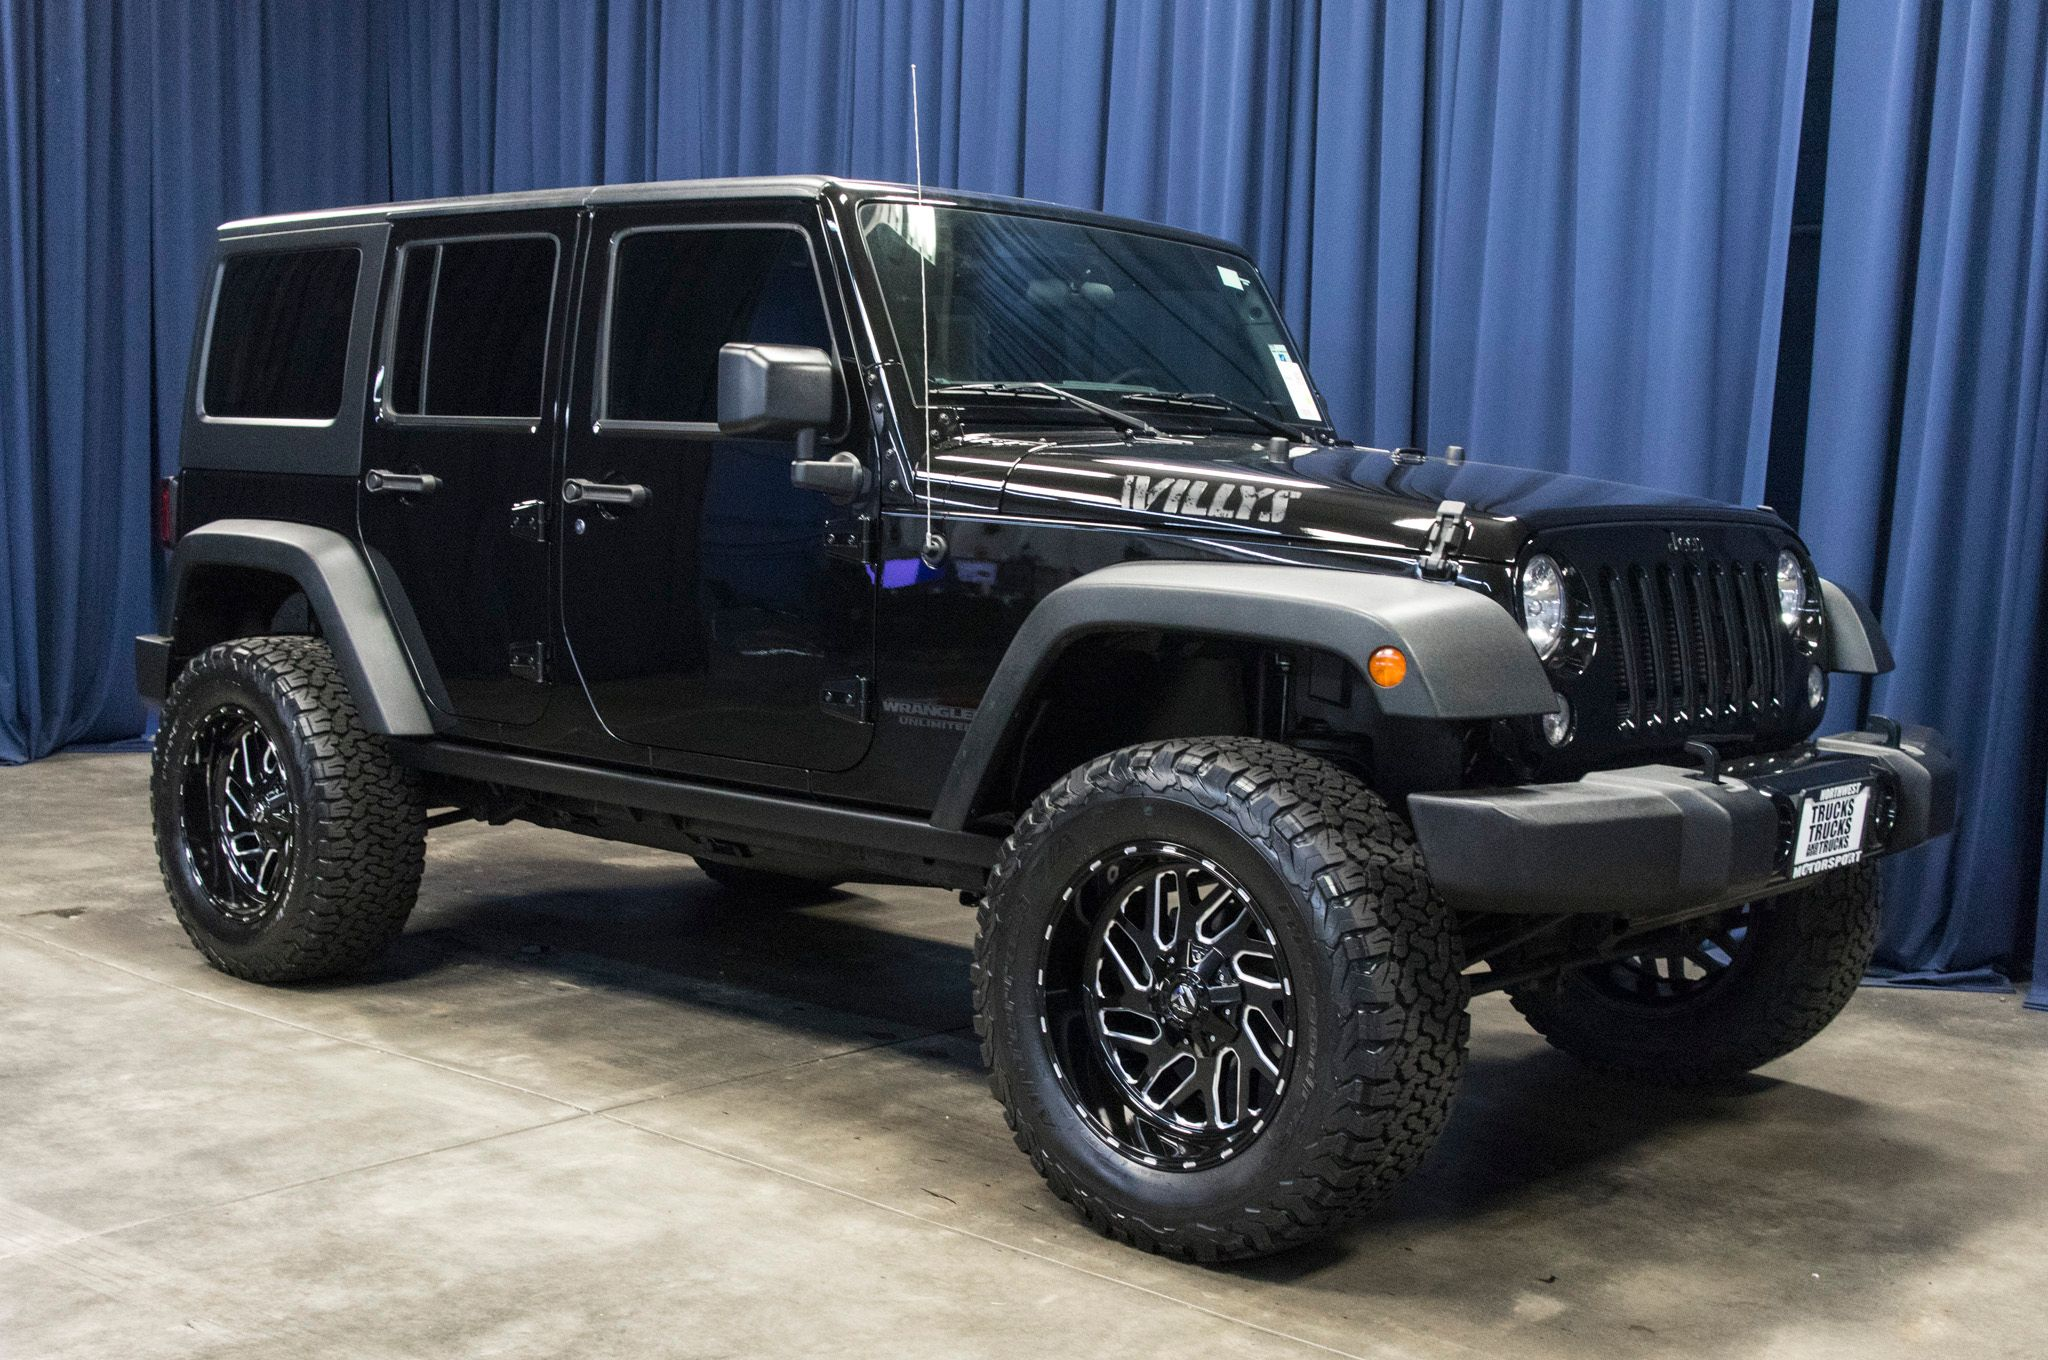 Used Lifted 2016 Jeep Wrangler Unlimited Willys 4x4 JKU SUV For